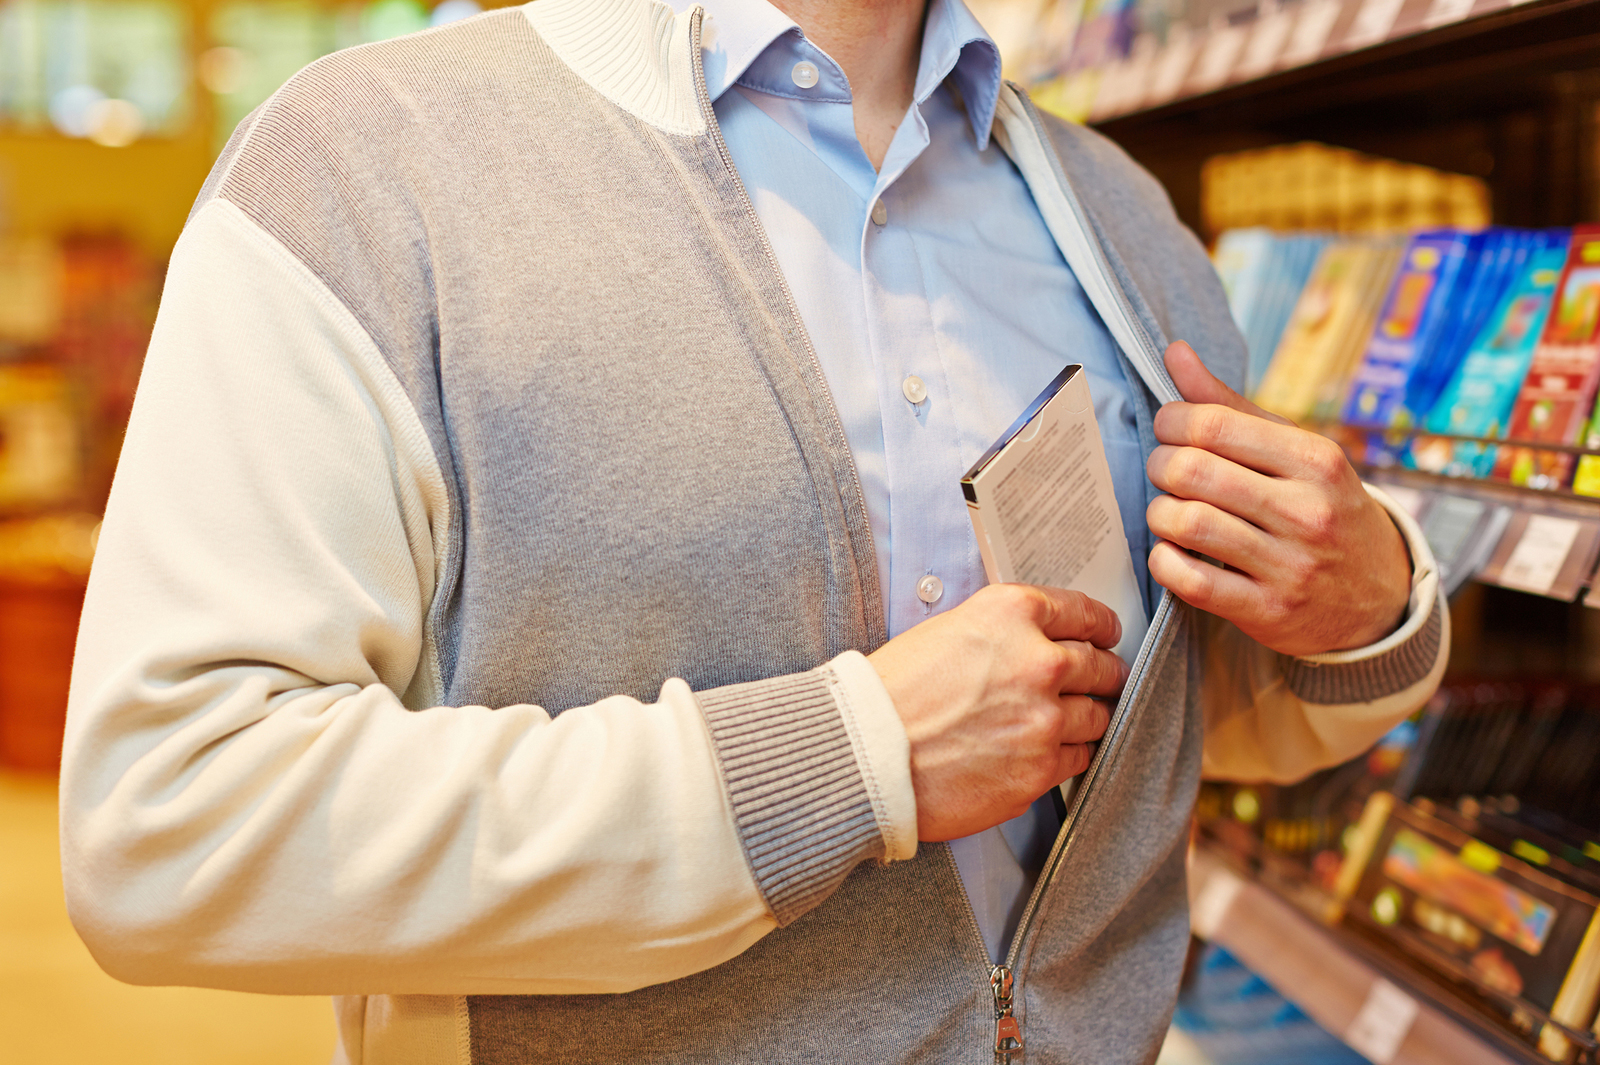 Steps to Help Prevent Employee Theft in Retail